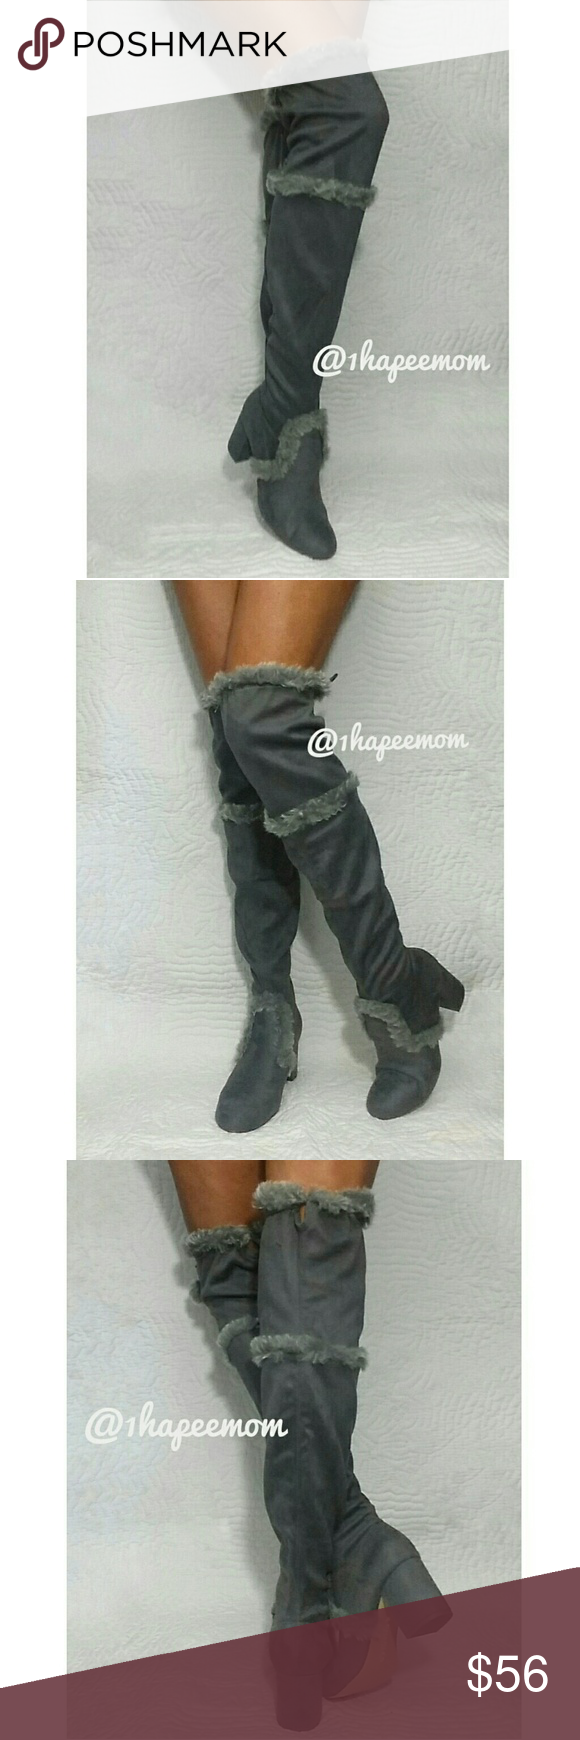 129b22997dd SZ 9 OVER THE KNEE CHARLES DAVID FUR TRIM BOOTS CHARLES BY DAVID CHARLES  ODOM FAUX FUR TRIMMED OVER THE KNEE BOOTS -BRAND NEW STILL IN BOX -PULL ON  -BLOCK ...